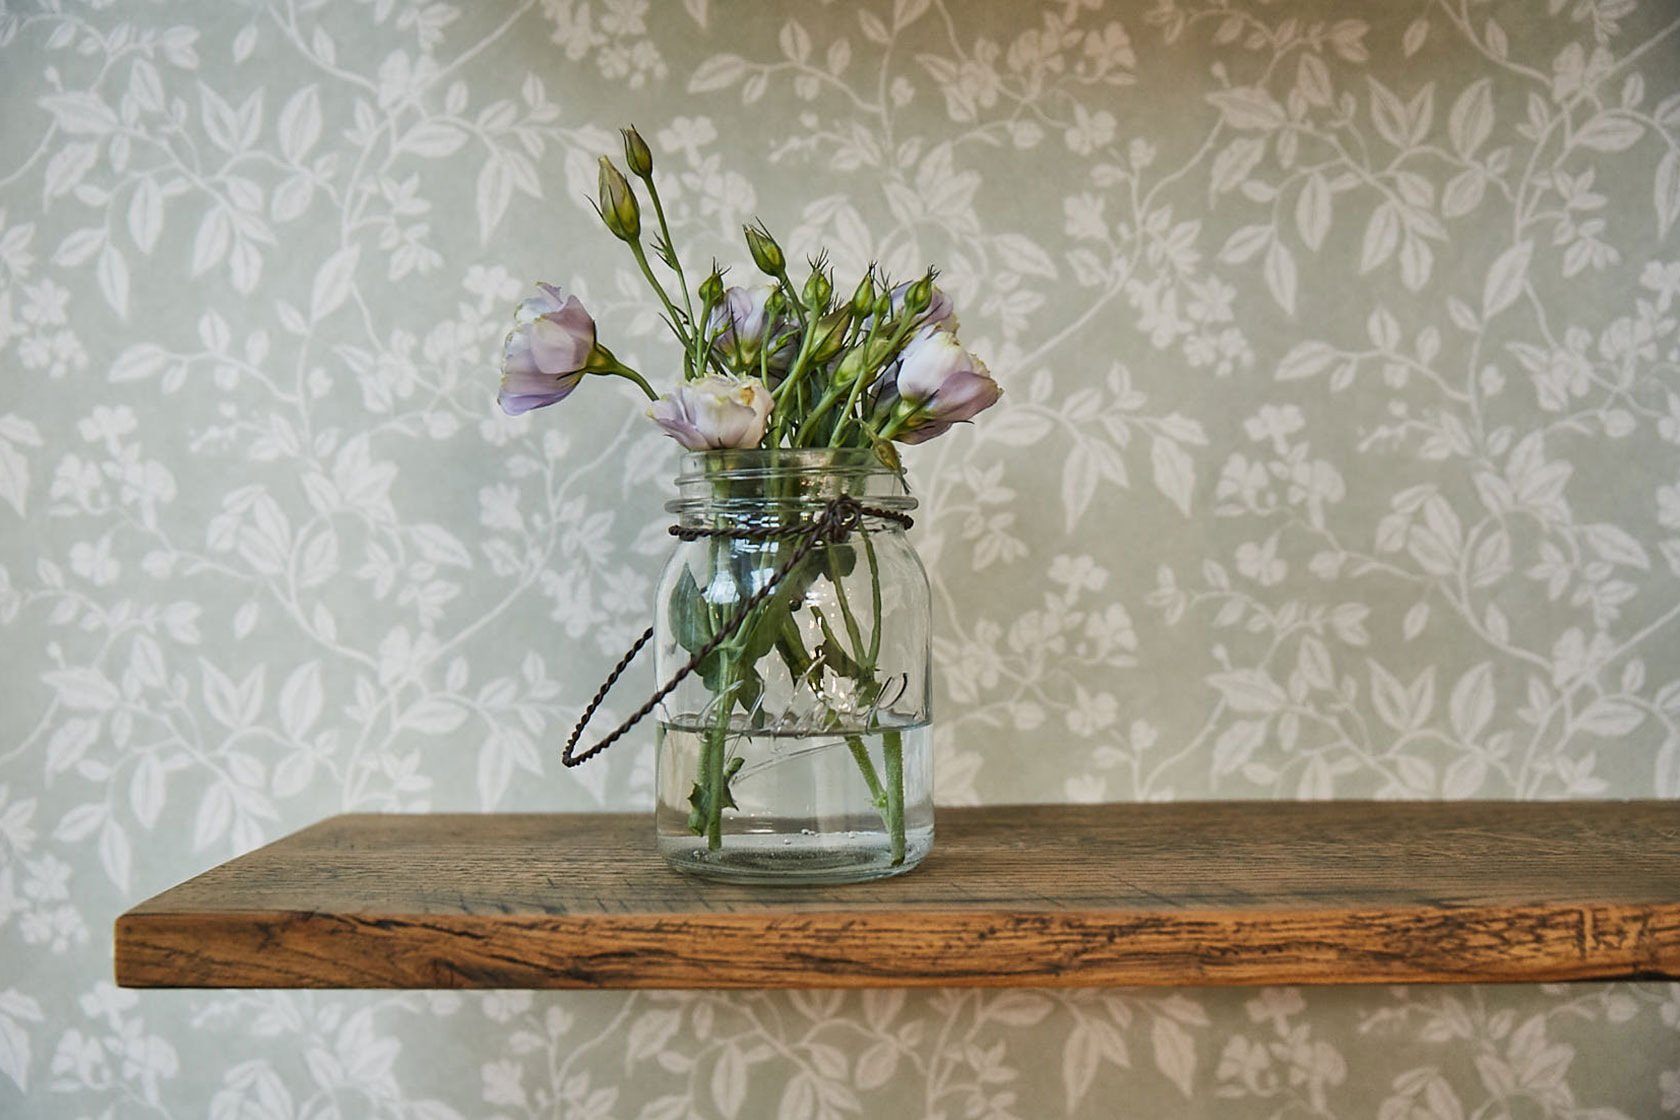 Flowers in glass jar sit on rustic oak shelf with green floral wallpaper background